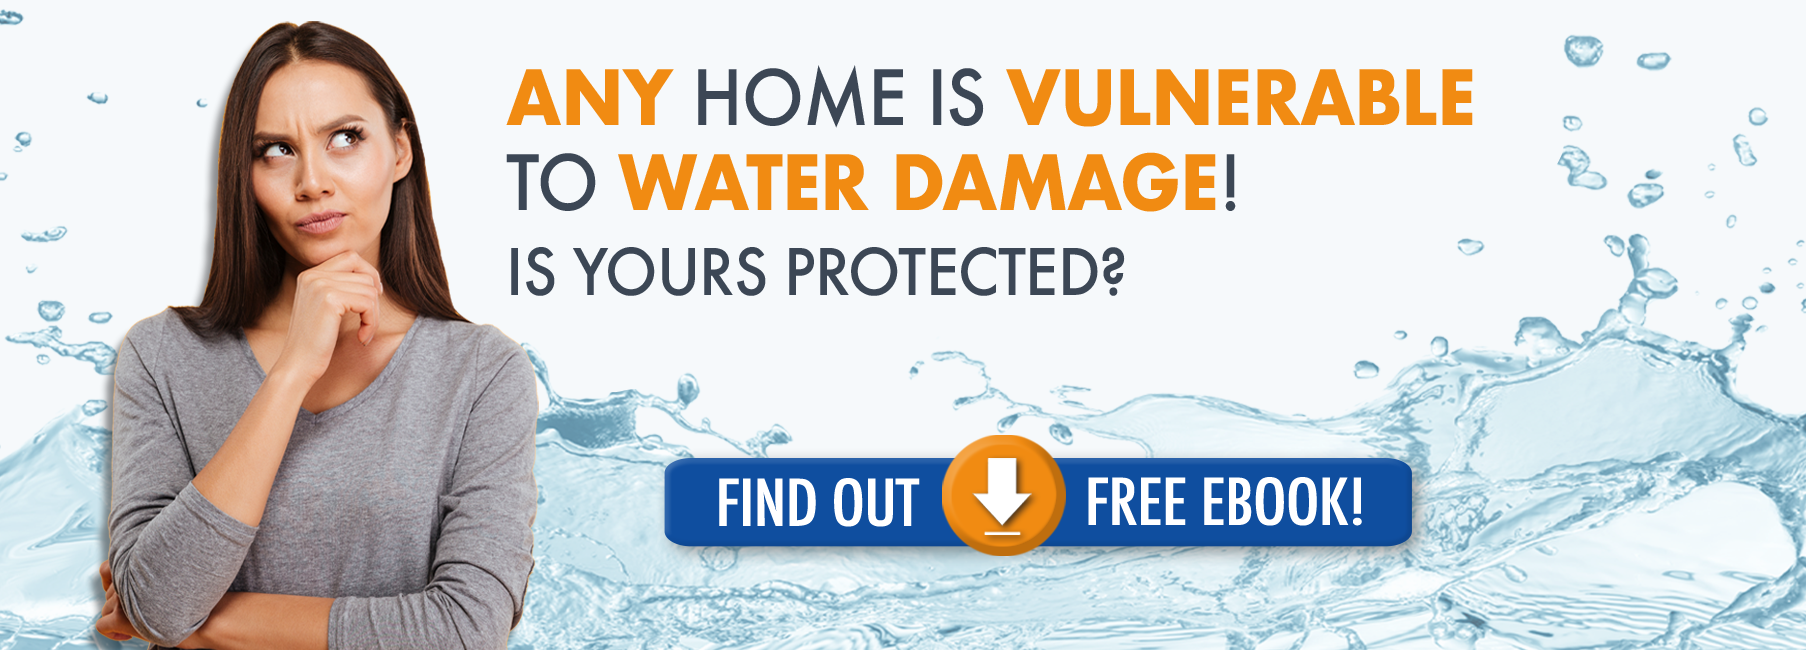 Any Home is Vulnerable to Water Damage! Is Yours Protected?